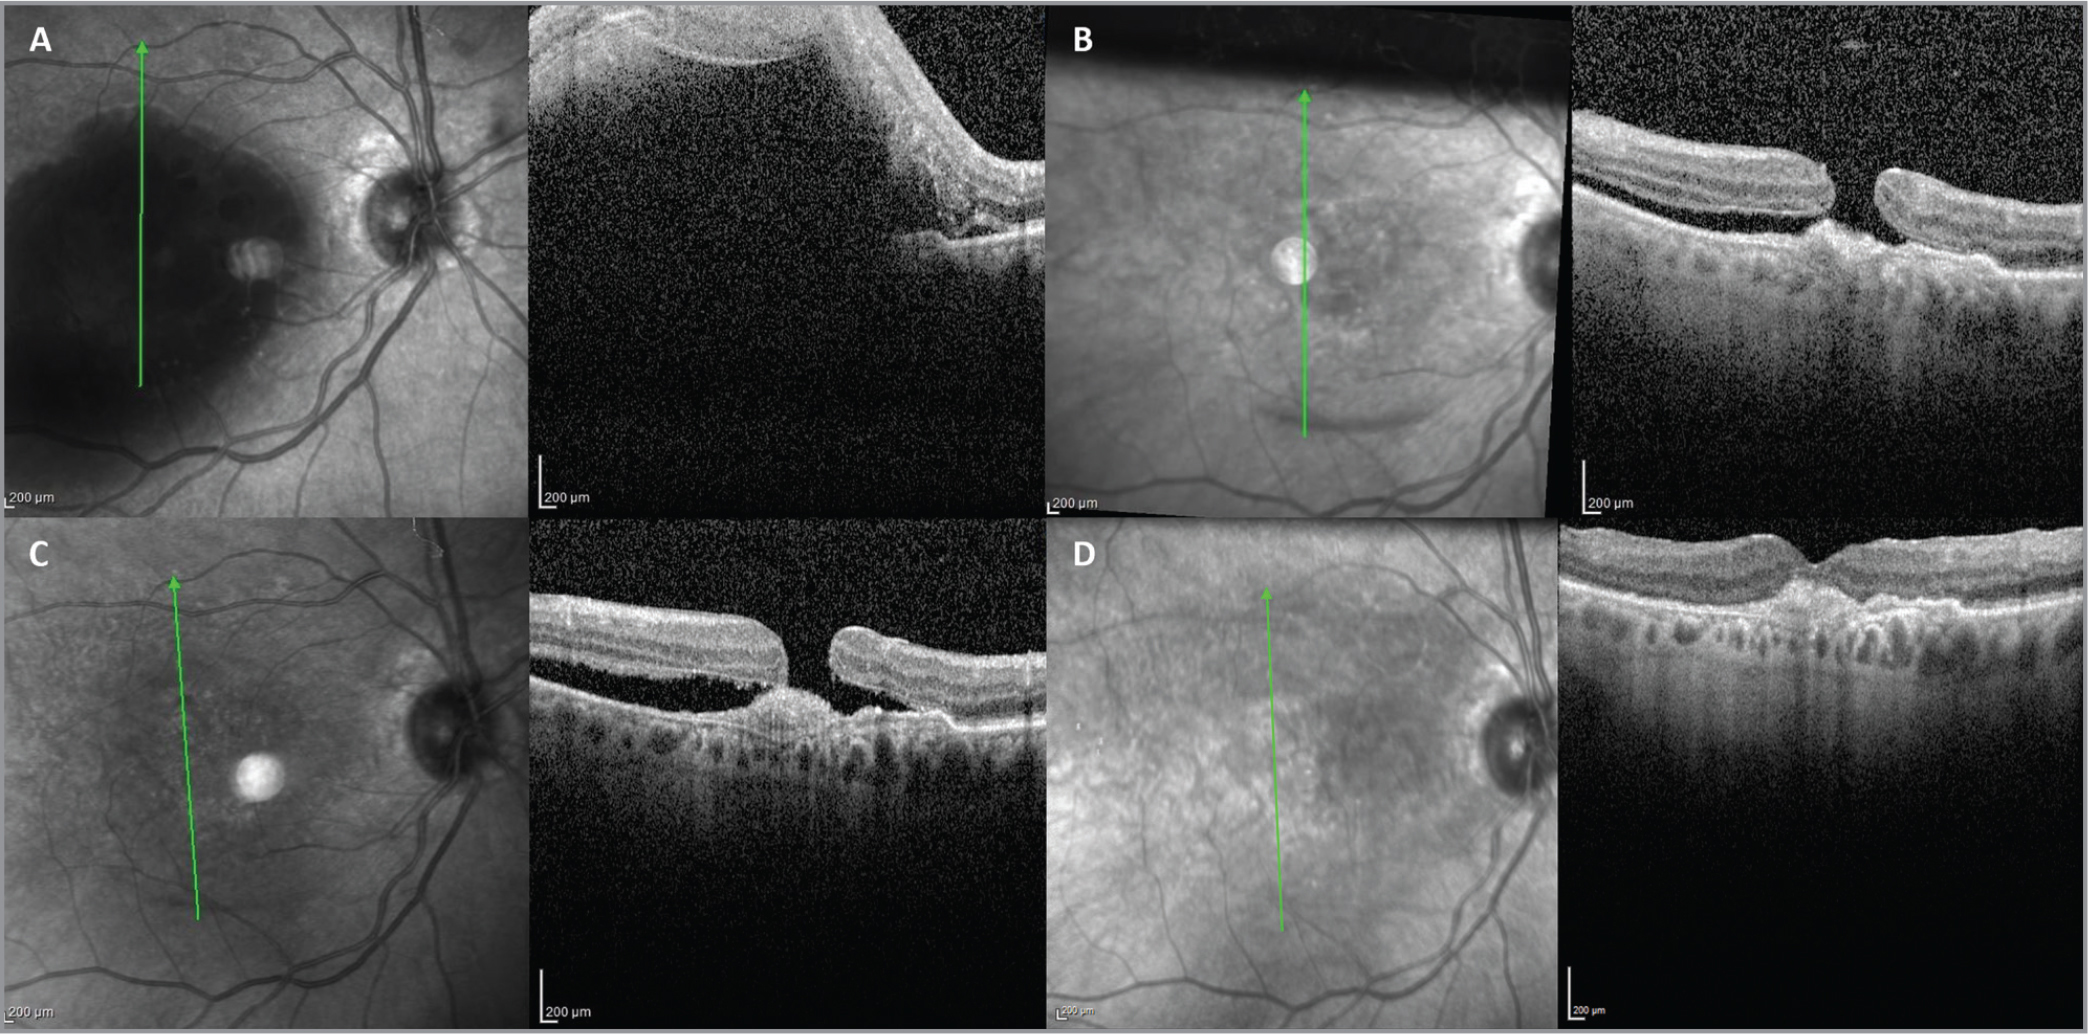 Optical coherence tomography (OCT) of submacular hemorrhage secondary to neovascular age-related macular degeneration (nAMD). OCT of (A) the right eye reveals submacular hemorrhage secondary to nAMD. Imaging revealed subretinal fluid (SRF) with retinal thickening consistent with macular edema. Postoperative imaging at (B) 10 days and (C) week 3 after vitrectomy with tissue plasminogen activator administration demonstrated a macular hole (MH) with persistent SRF and a pigment epithelial detachment (PED). The eye then underwent MH repair with vitrectomy and an internal limiting membrane peel. At postoperative week 1 (D), the MH is closed with resolution of the SRF but persistence of the PED.